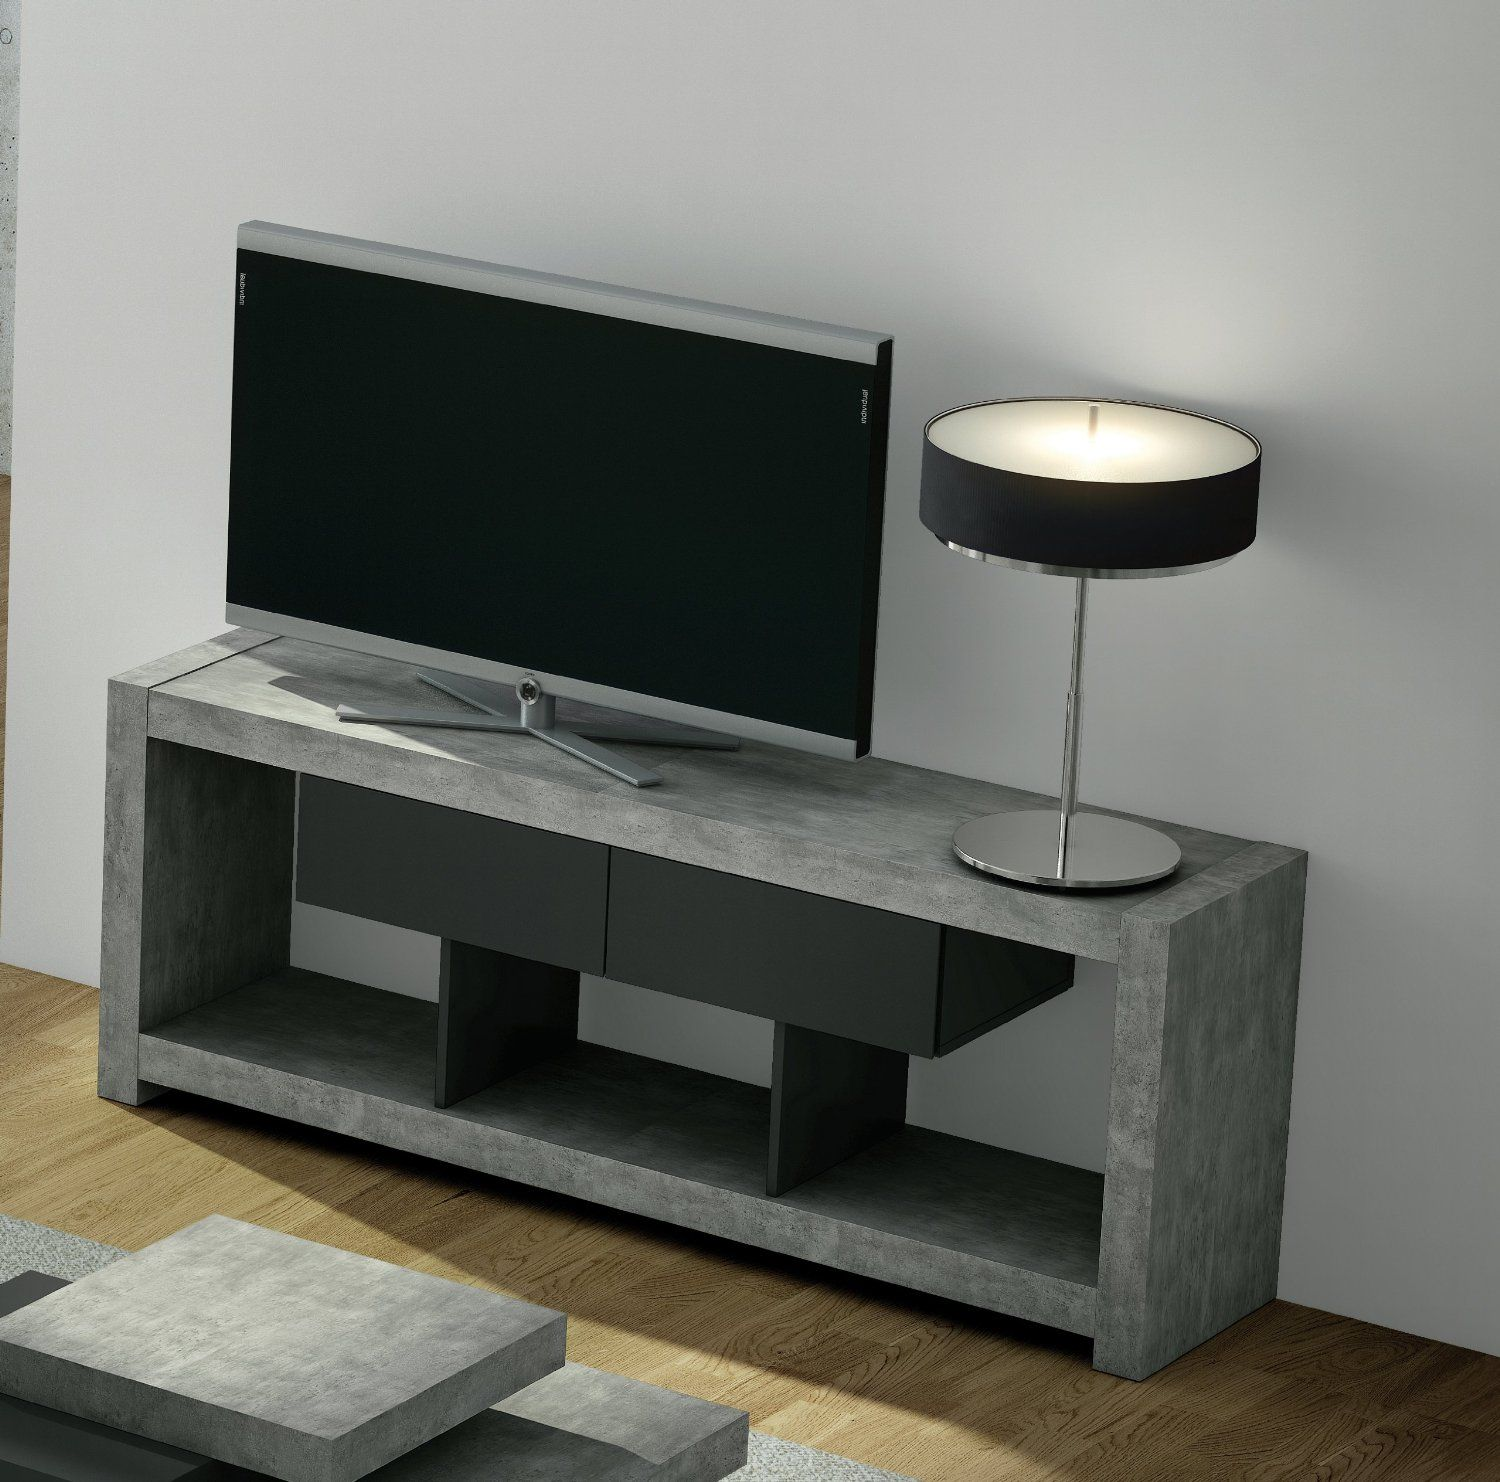 Bedroom Tv Stands: Temahome Concrete TV Stand.